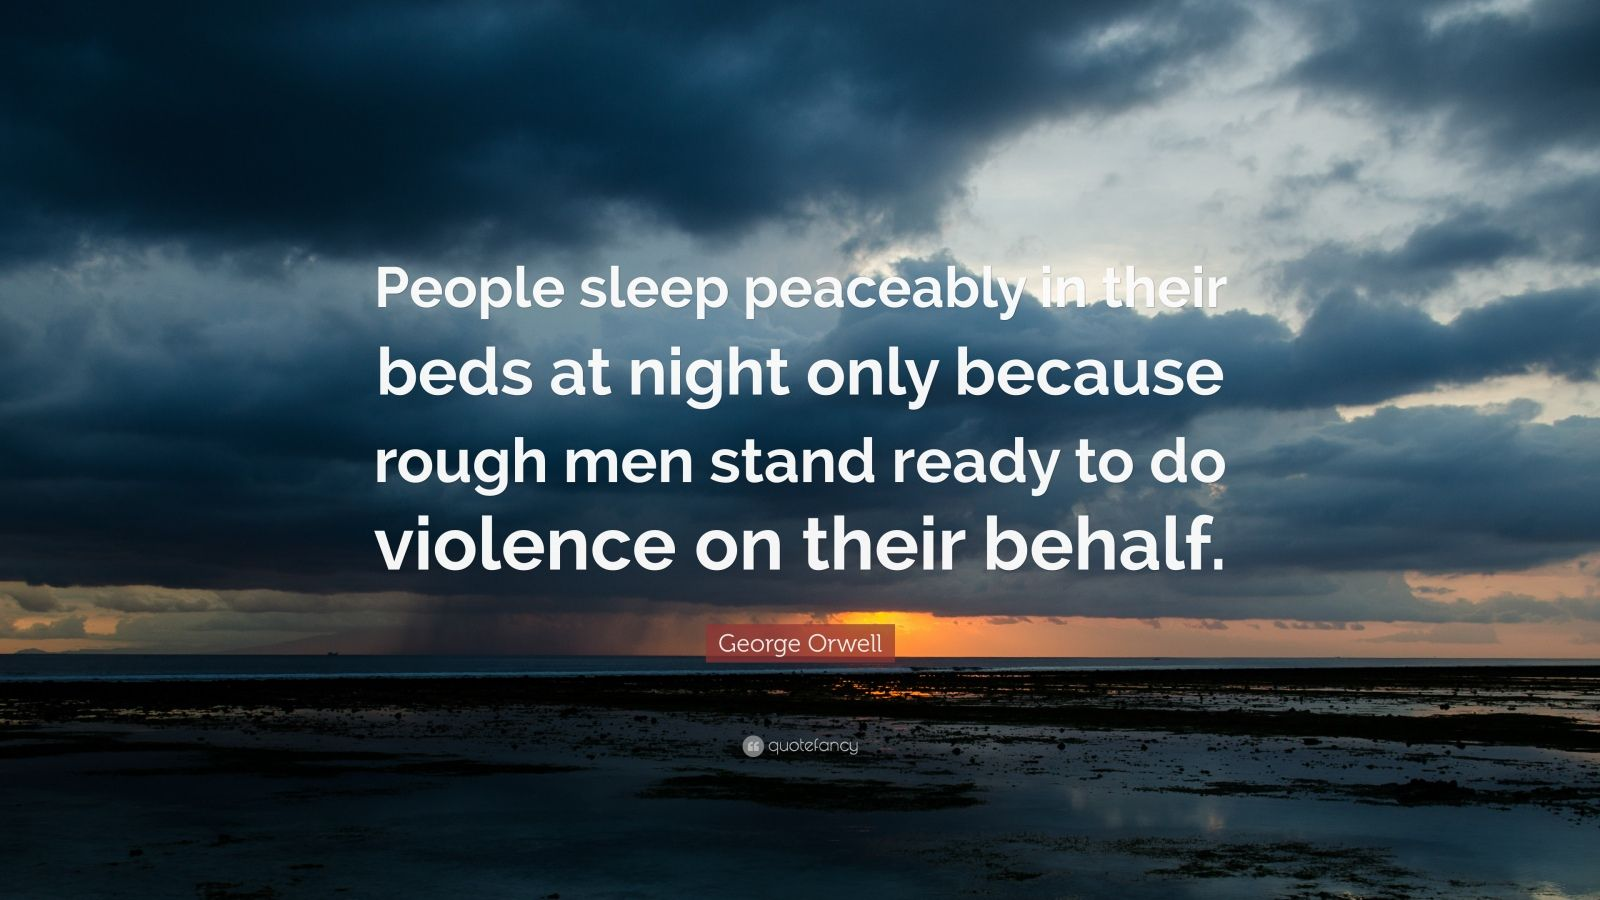 Ernest Hemingway Quote Wallpaper George Orwell Quote People Sleep Peaceably In Their Beds